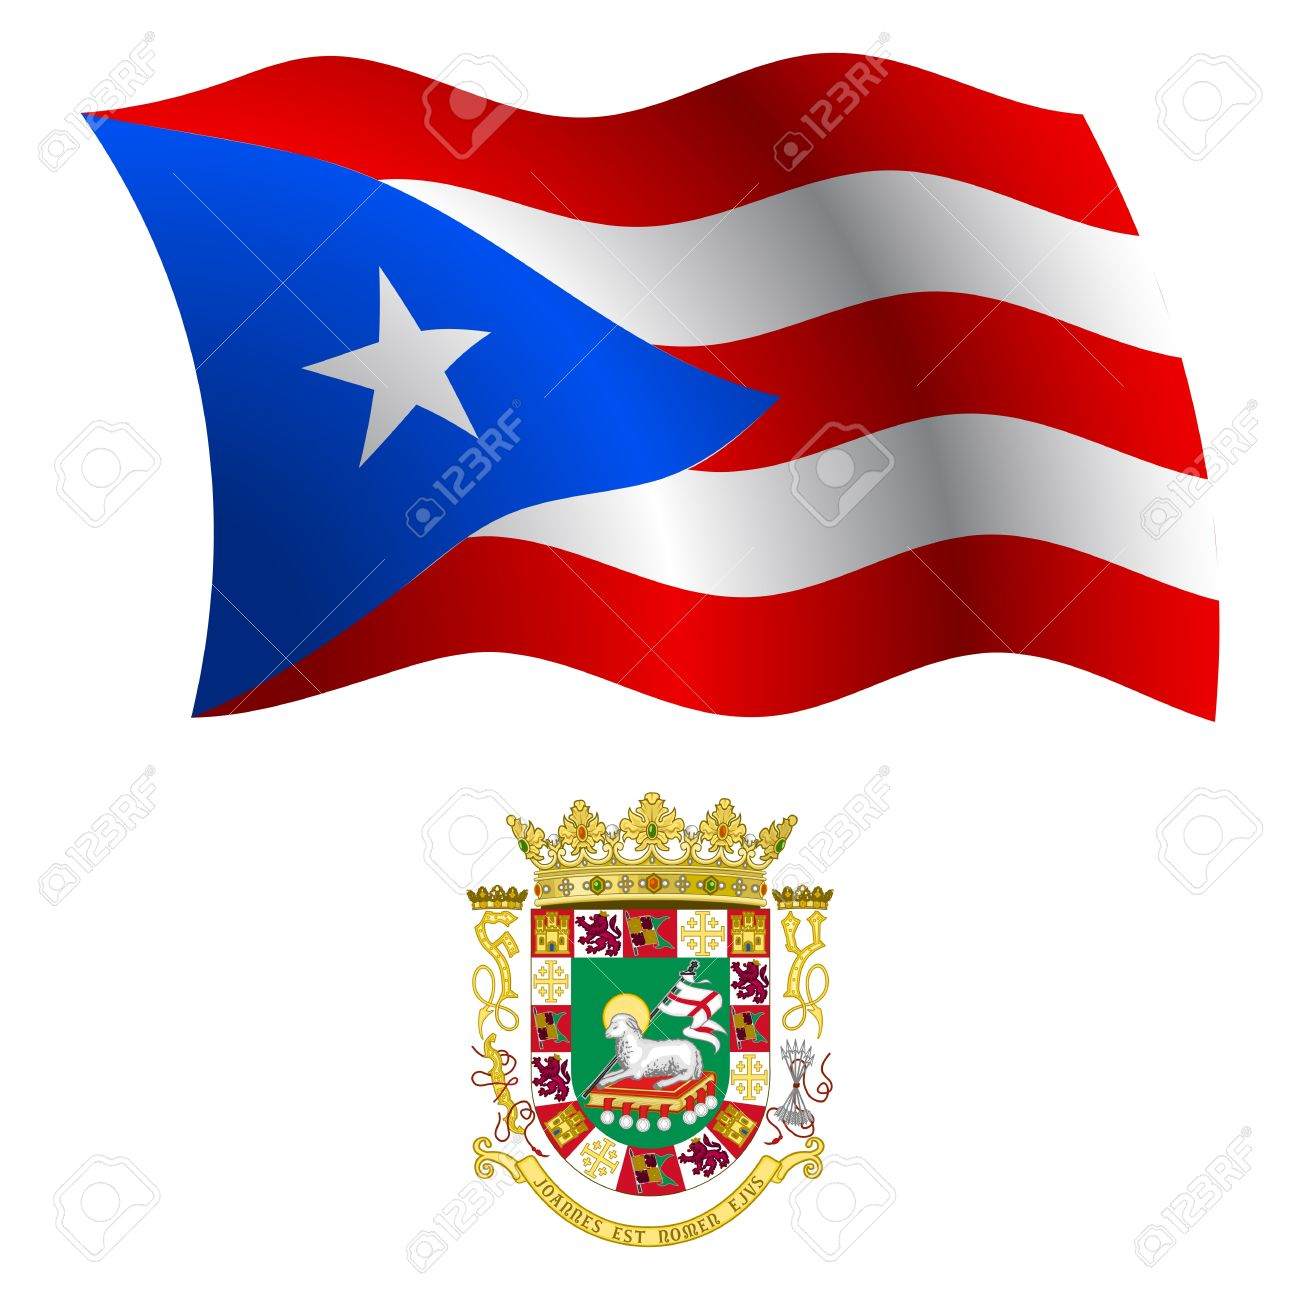 Puerto rico wavy flag and coat of arm against white background puerto rico wavy flag and coat of arm against white background vector art illustration biocorpaavc Image collections